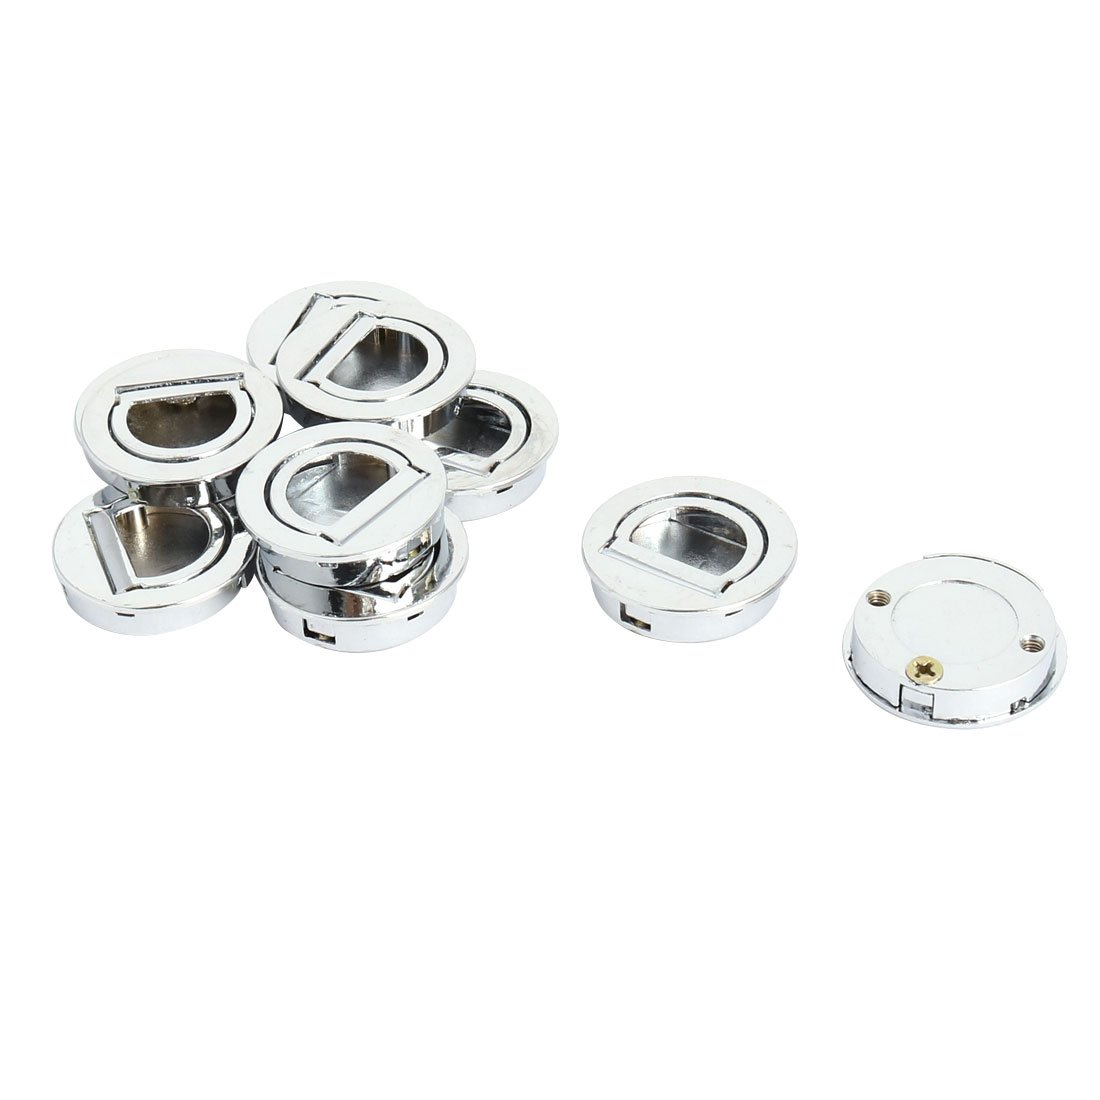 uxcell Furniture Door Cupboard Round Shaped Concealed Mount Pull Handle 10pcs Silver Tone